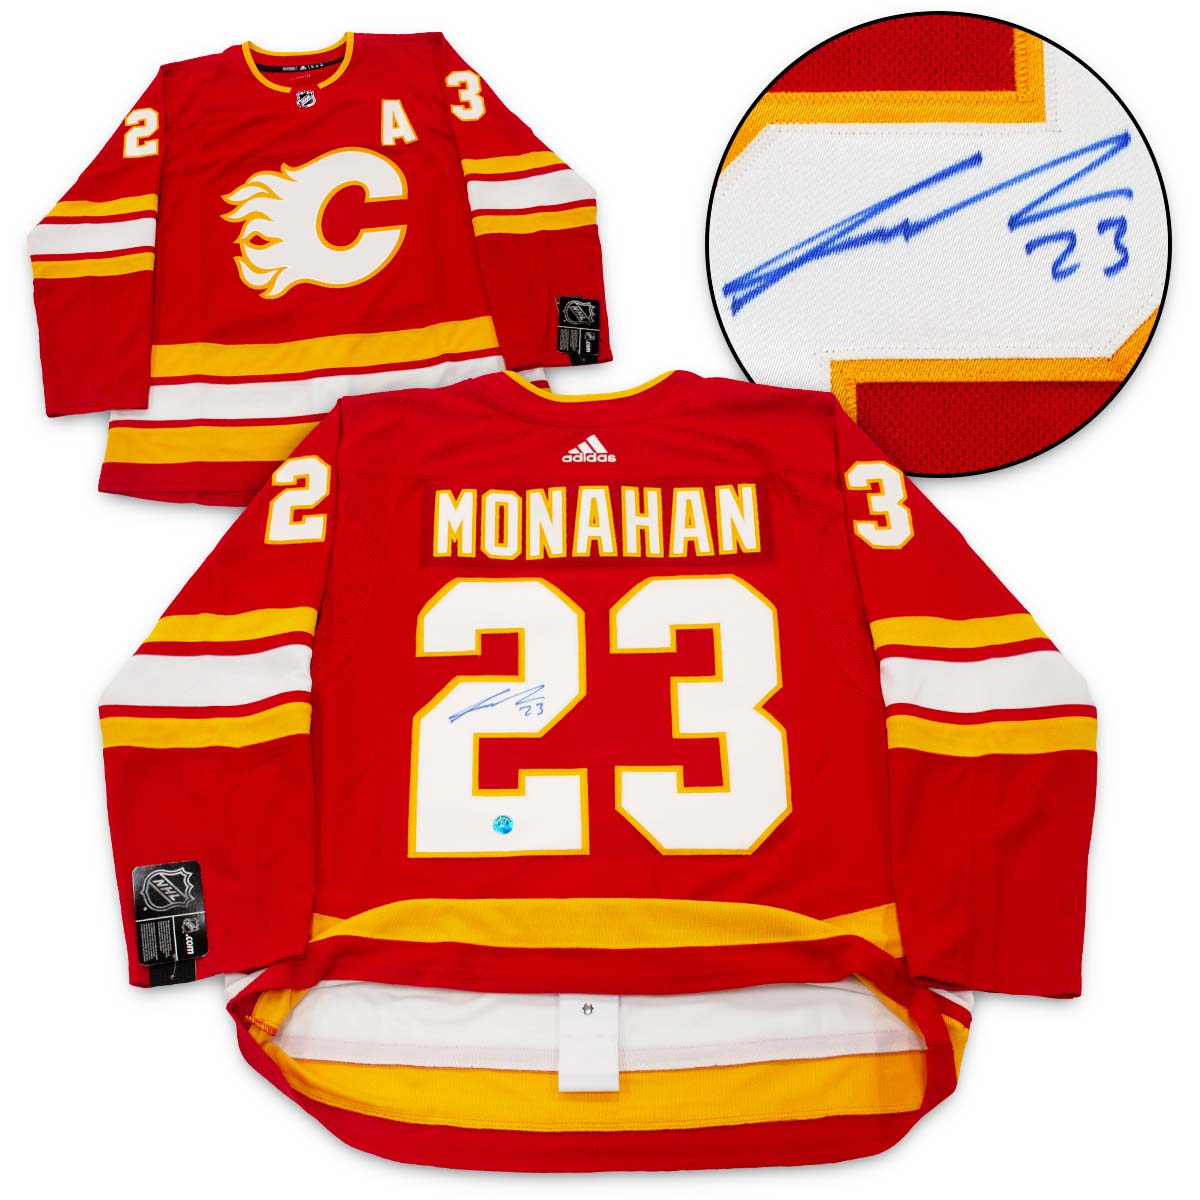 Sean Monahan Calgary Flames Autographed Alternate Adidas Authentic